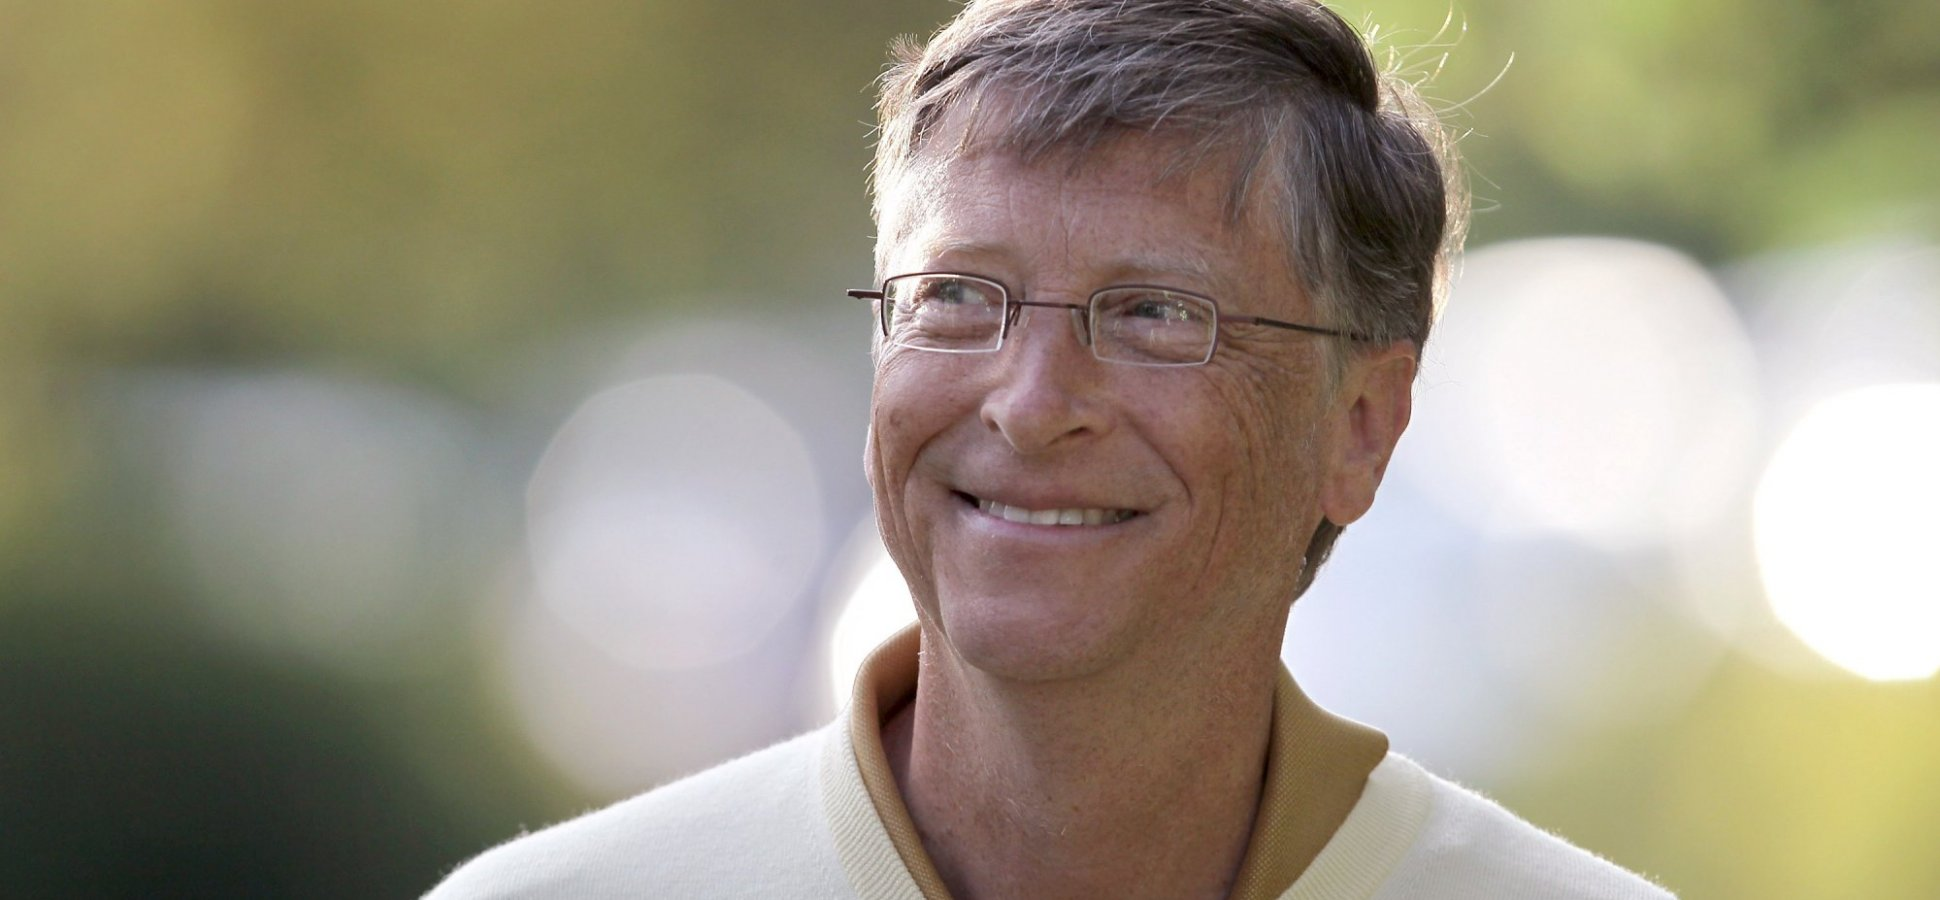 Here's Why Millions of People Find Bill Gates' Reading List Fascinating